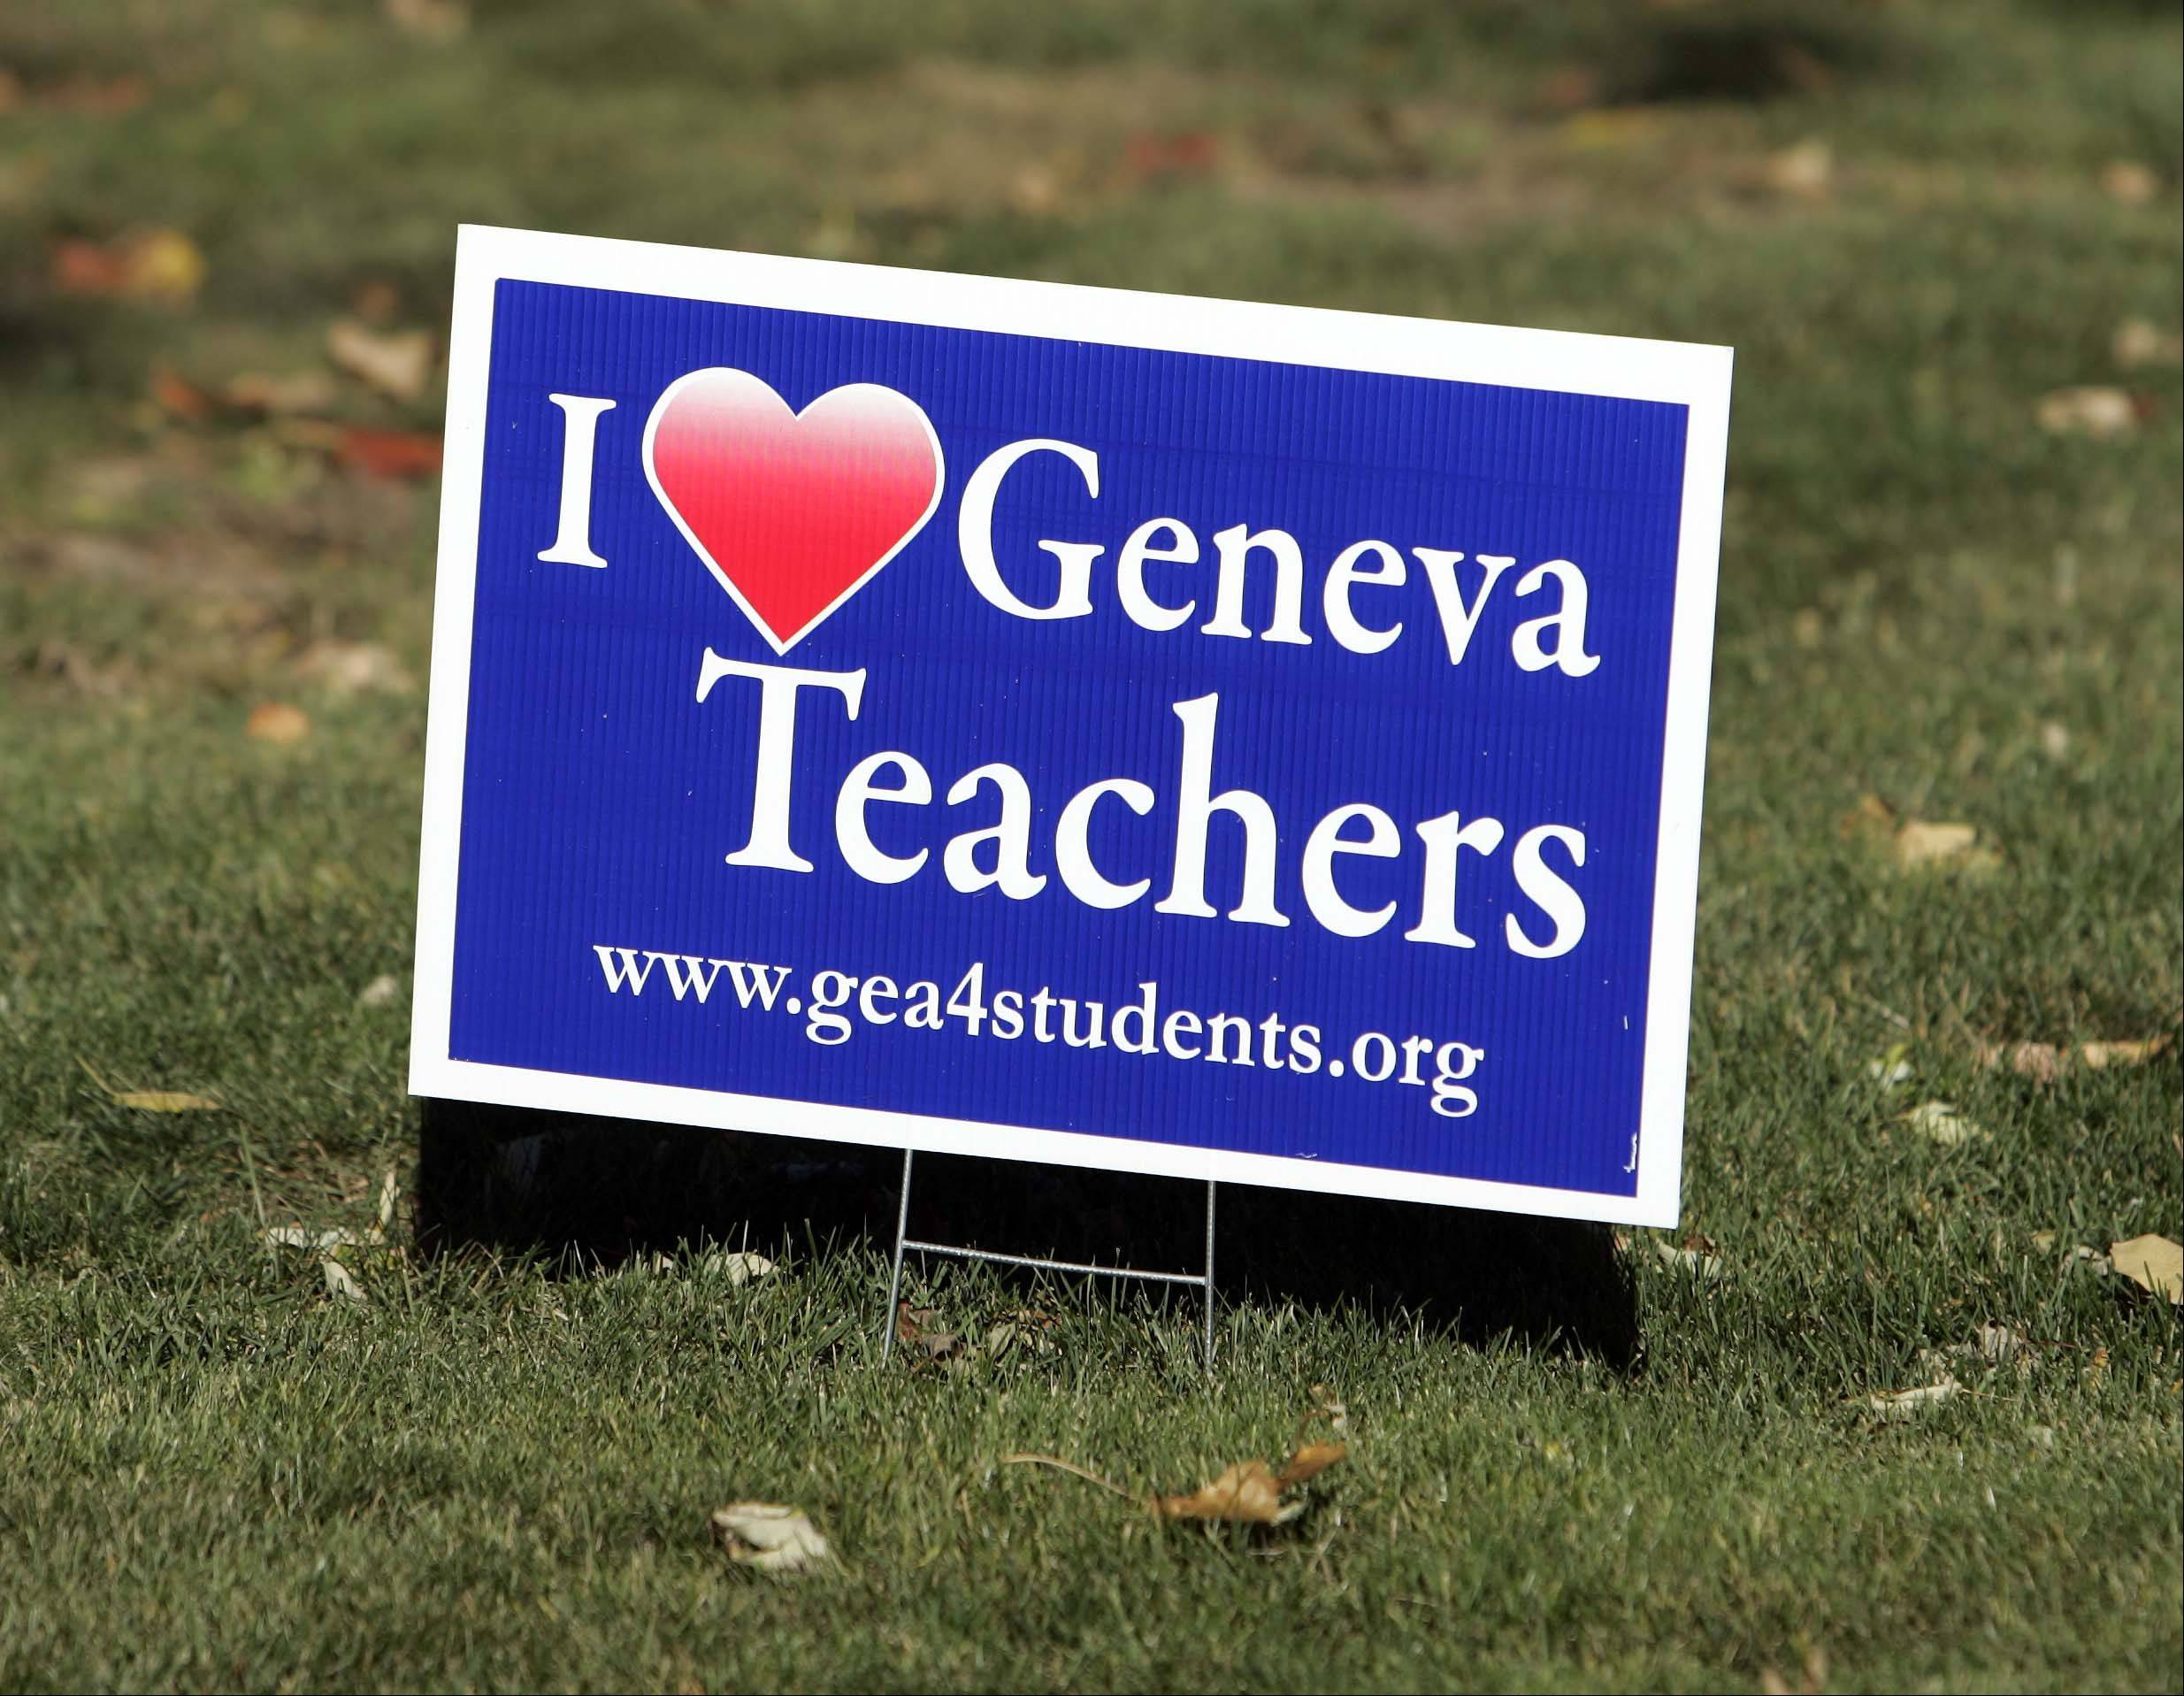 Signs supporting Geneva teachers were seen along Kaneville Road east of Randall Road on Oct. 12. Nearly a month later, we await word on whether the teachers will strike as soon as today.